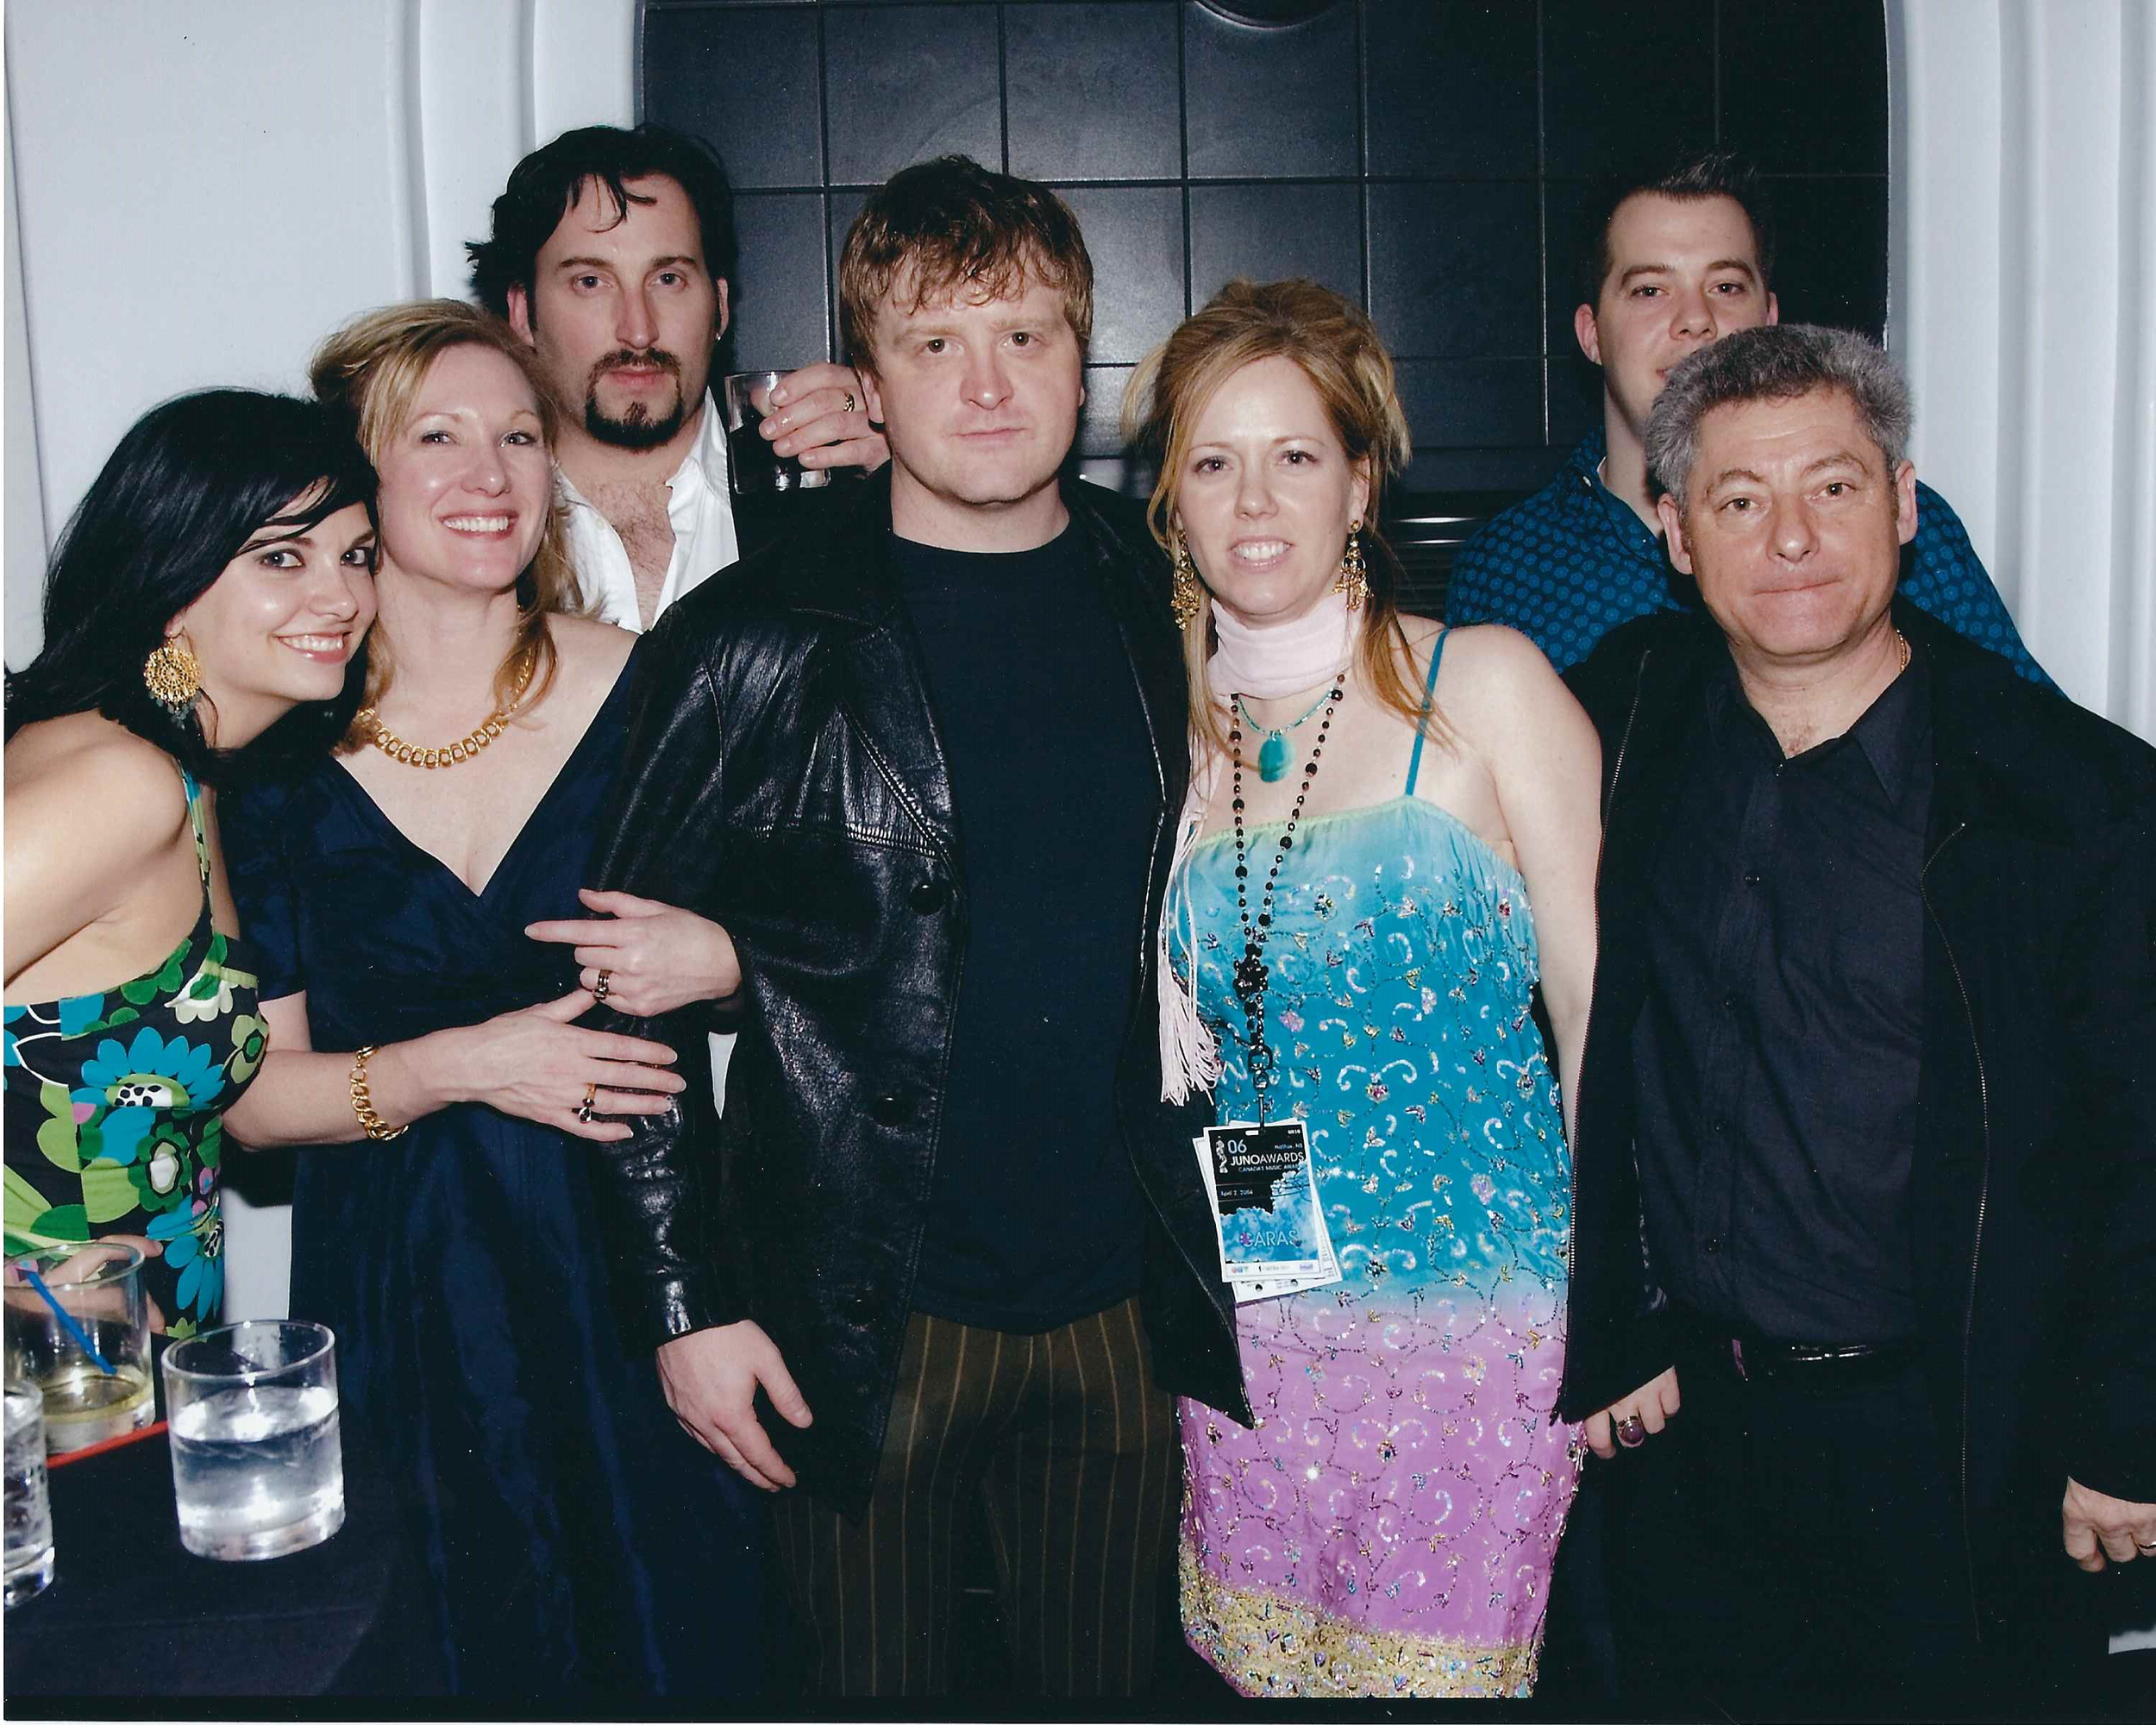 Juno After party with Julian and Bubbles of The Trailer Park Boys, Halifax 2005